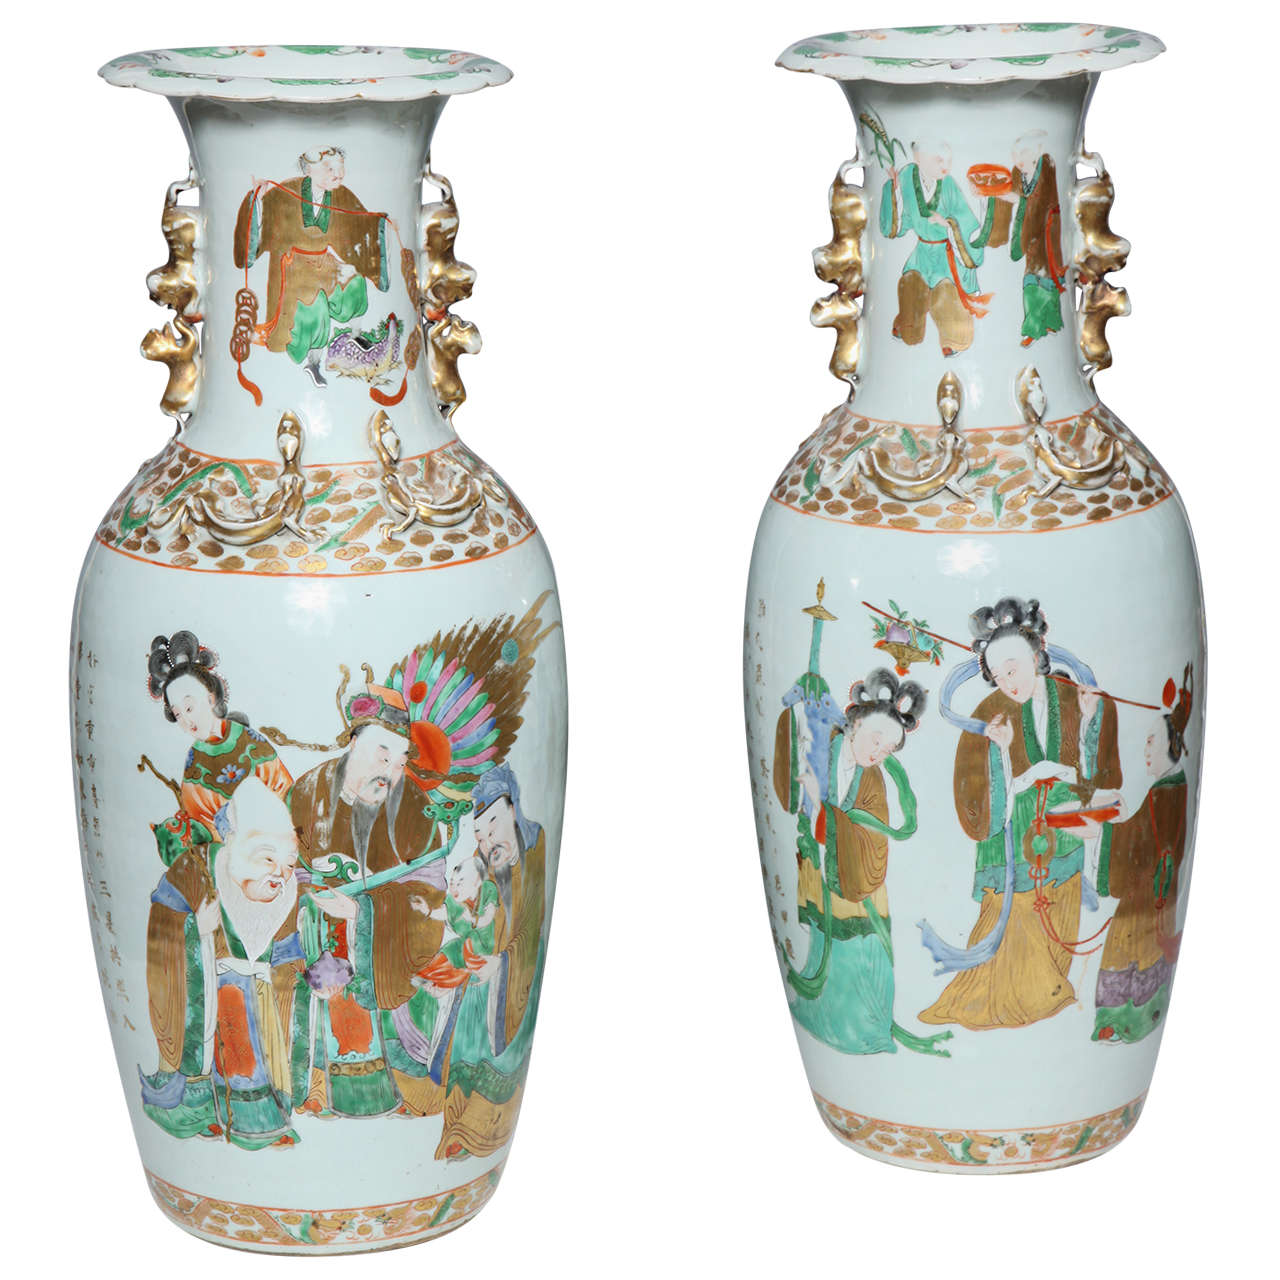 Porcelain asian vase